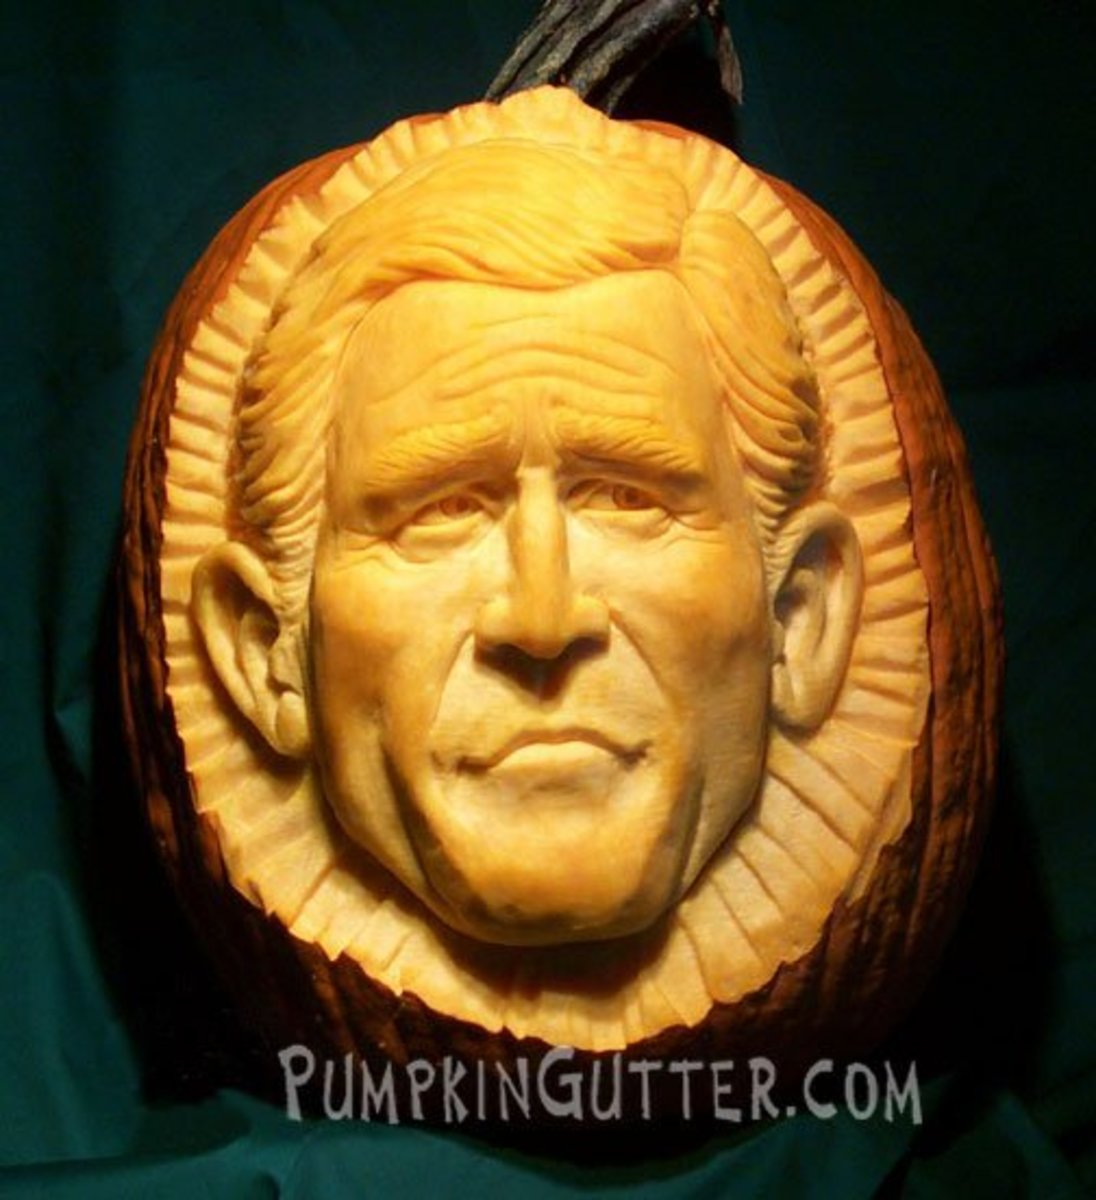 George W. Bush pumpkin